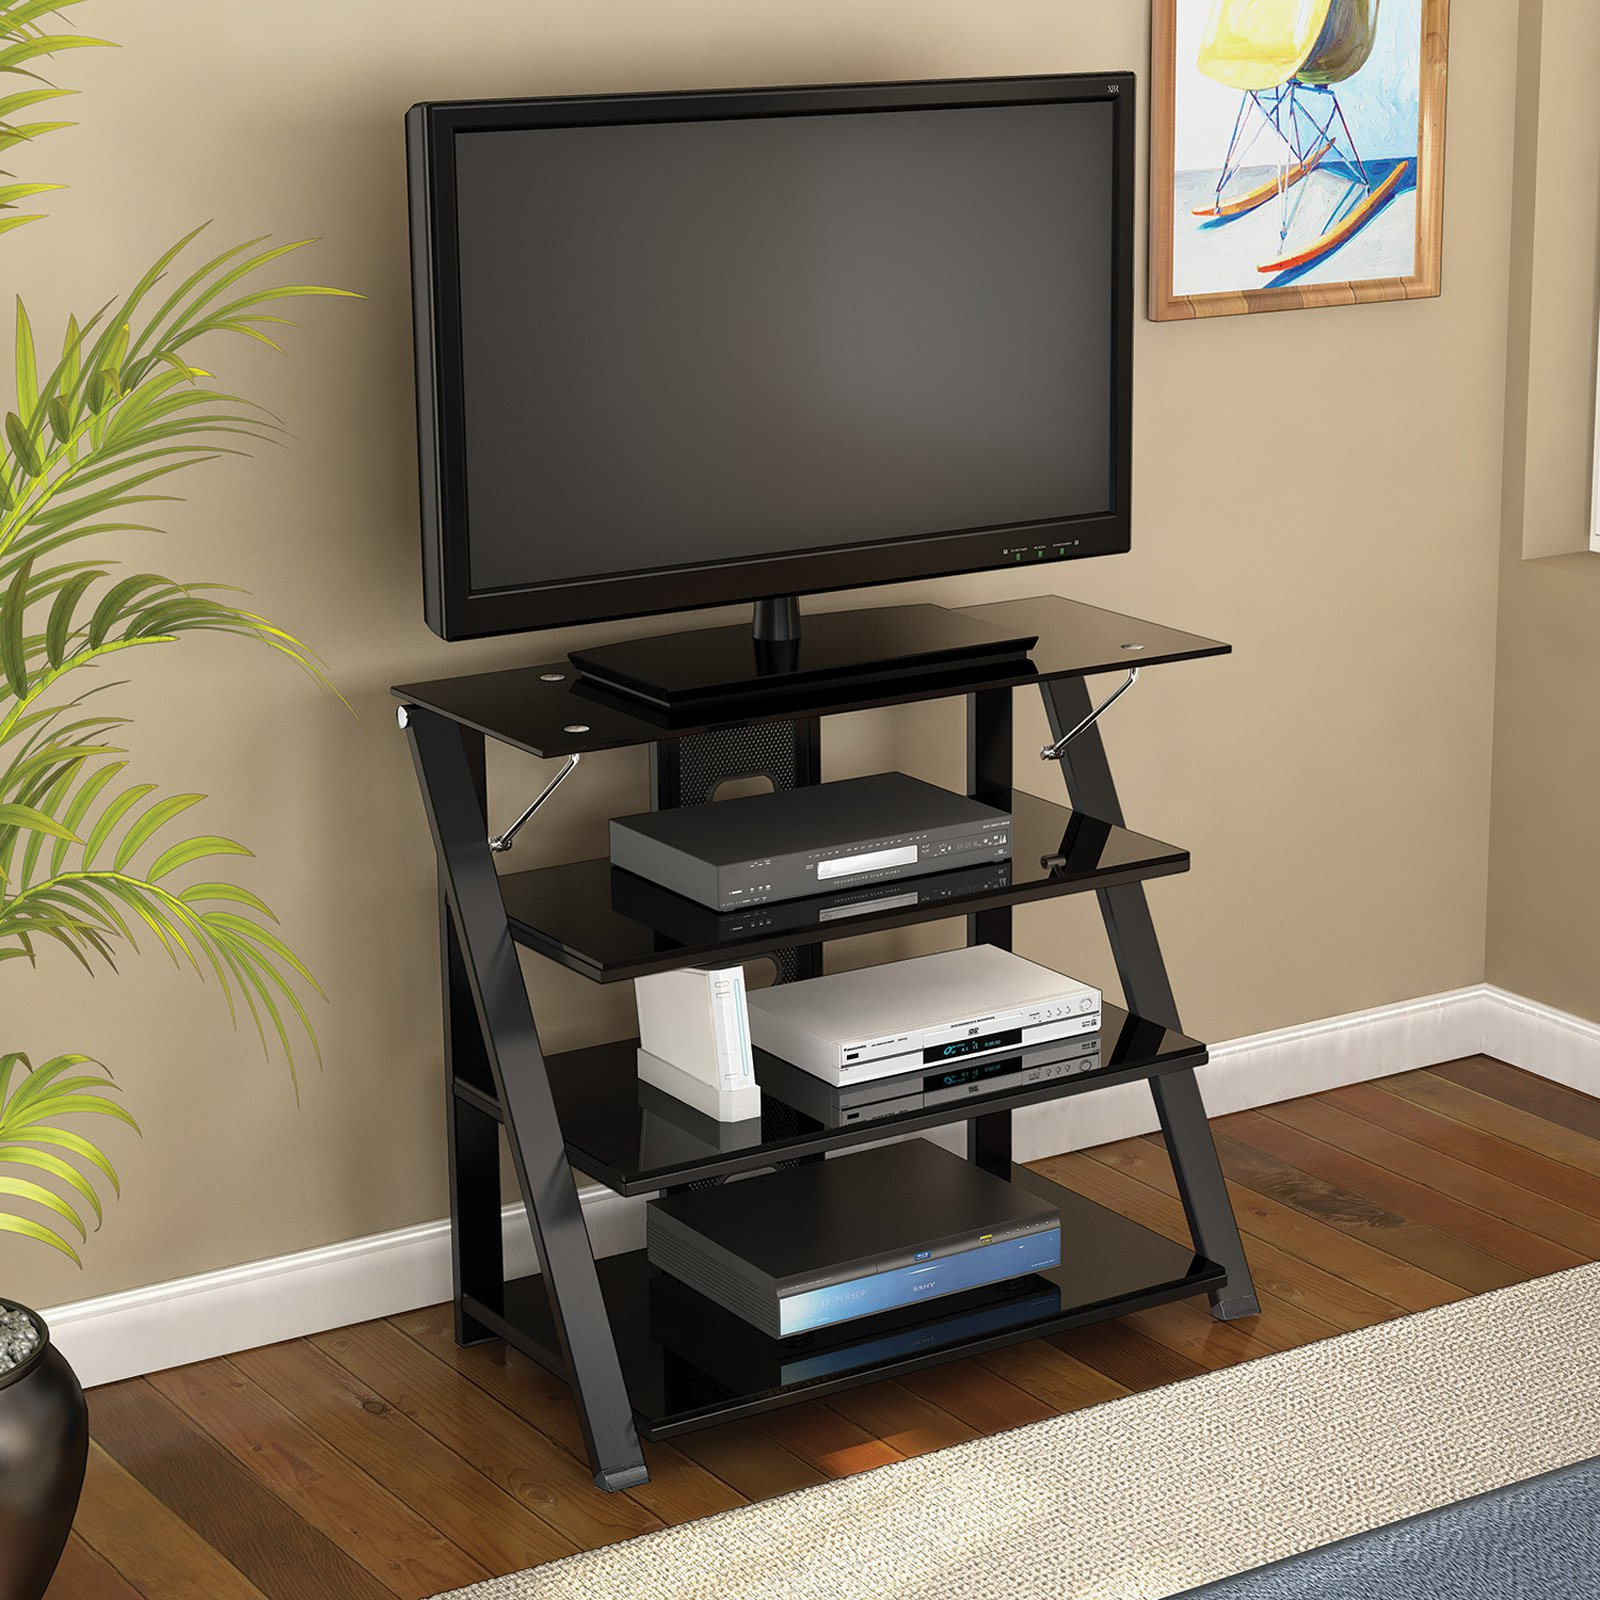 "Z-Line Designs Prizm Highboy Television Standfor TVs up to 50"", Black"